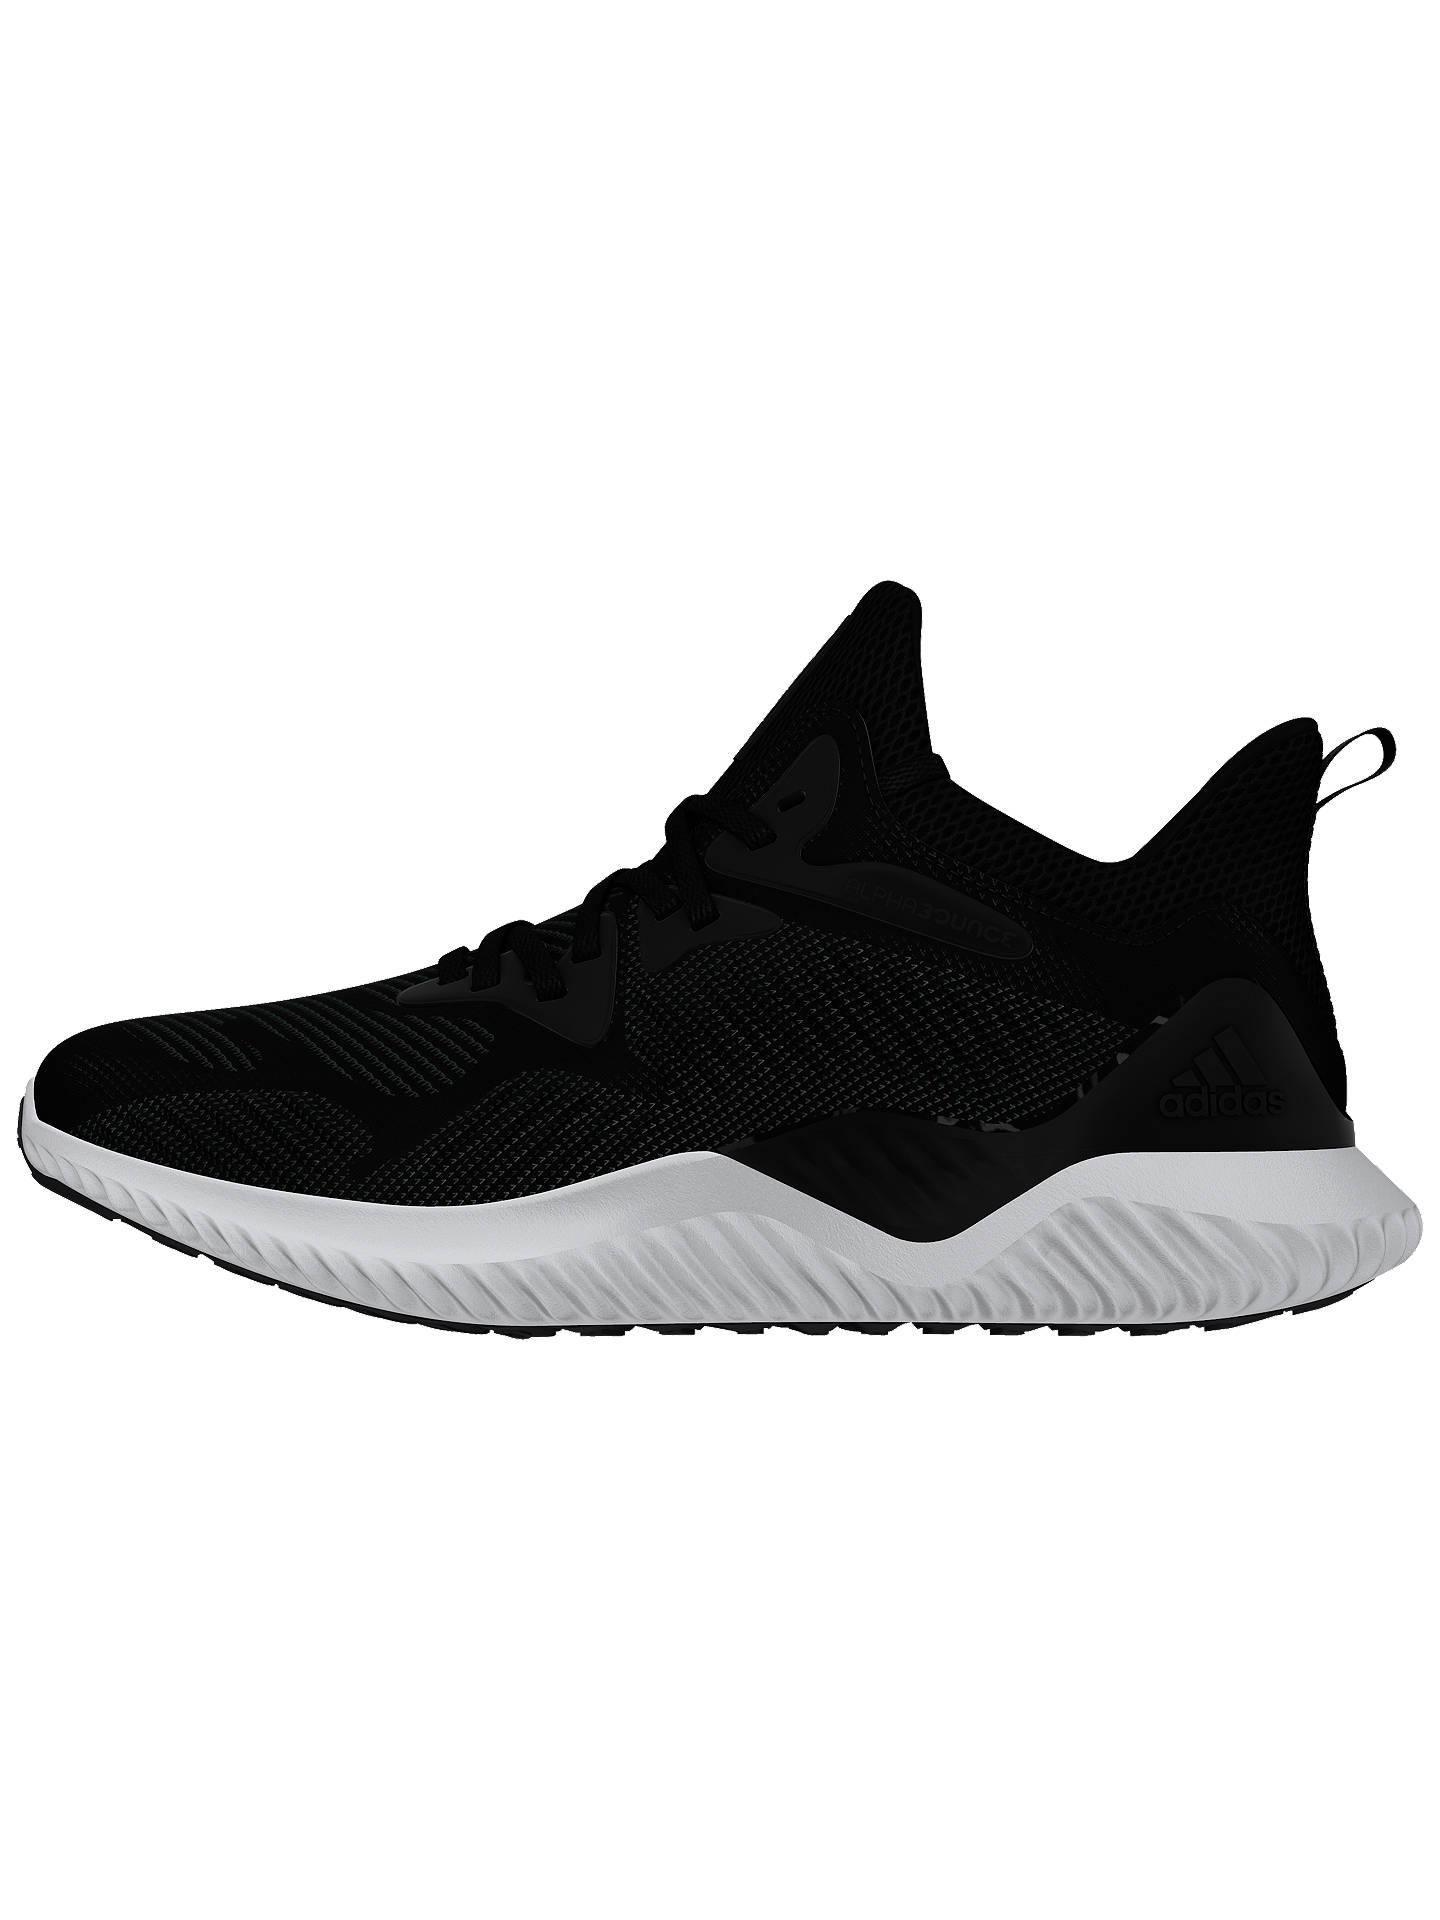 sports shoes 81ecf ac4c6 Buyadidas Alphabounce Beyond Women s Running Shoes, Core Black, 4 Online at  johnlewis. ...